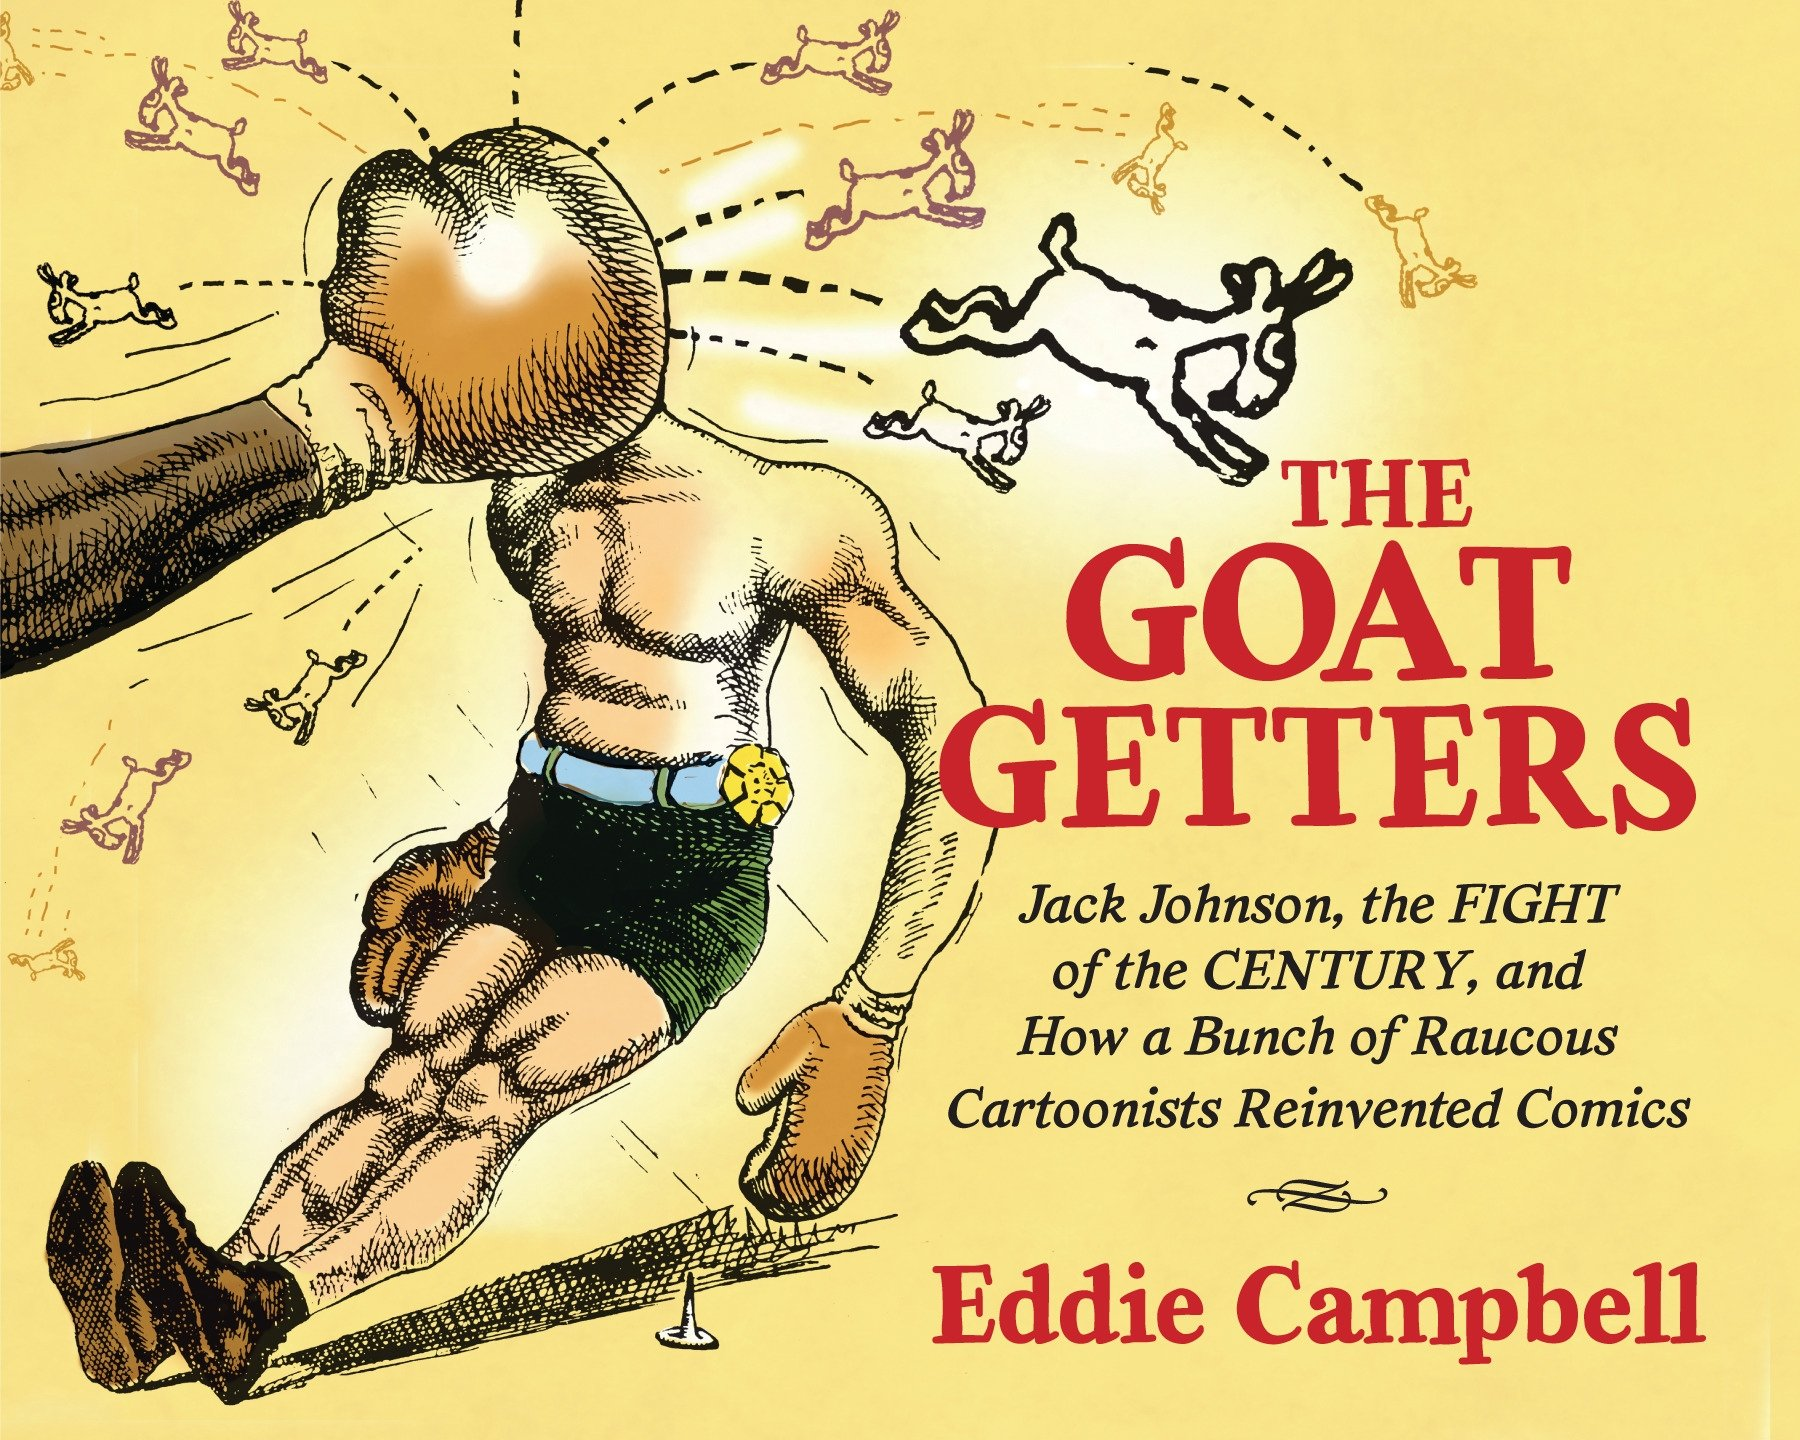 The Goat-Getters: Jack Johnson, the Fight of the Century, and How a Bunch of Raucous Cartoonists Reinvented Comics PDF Text fb2 book